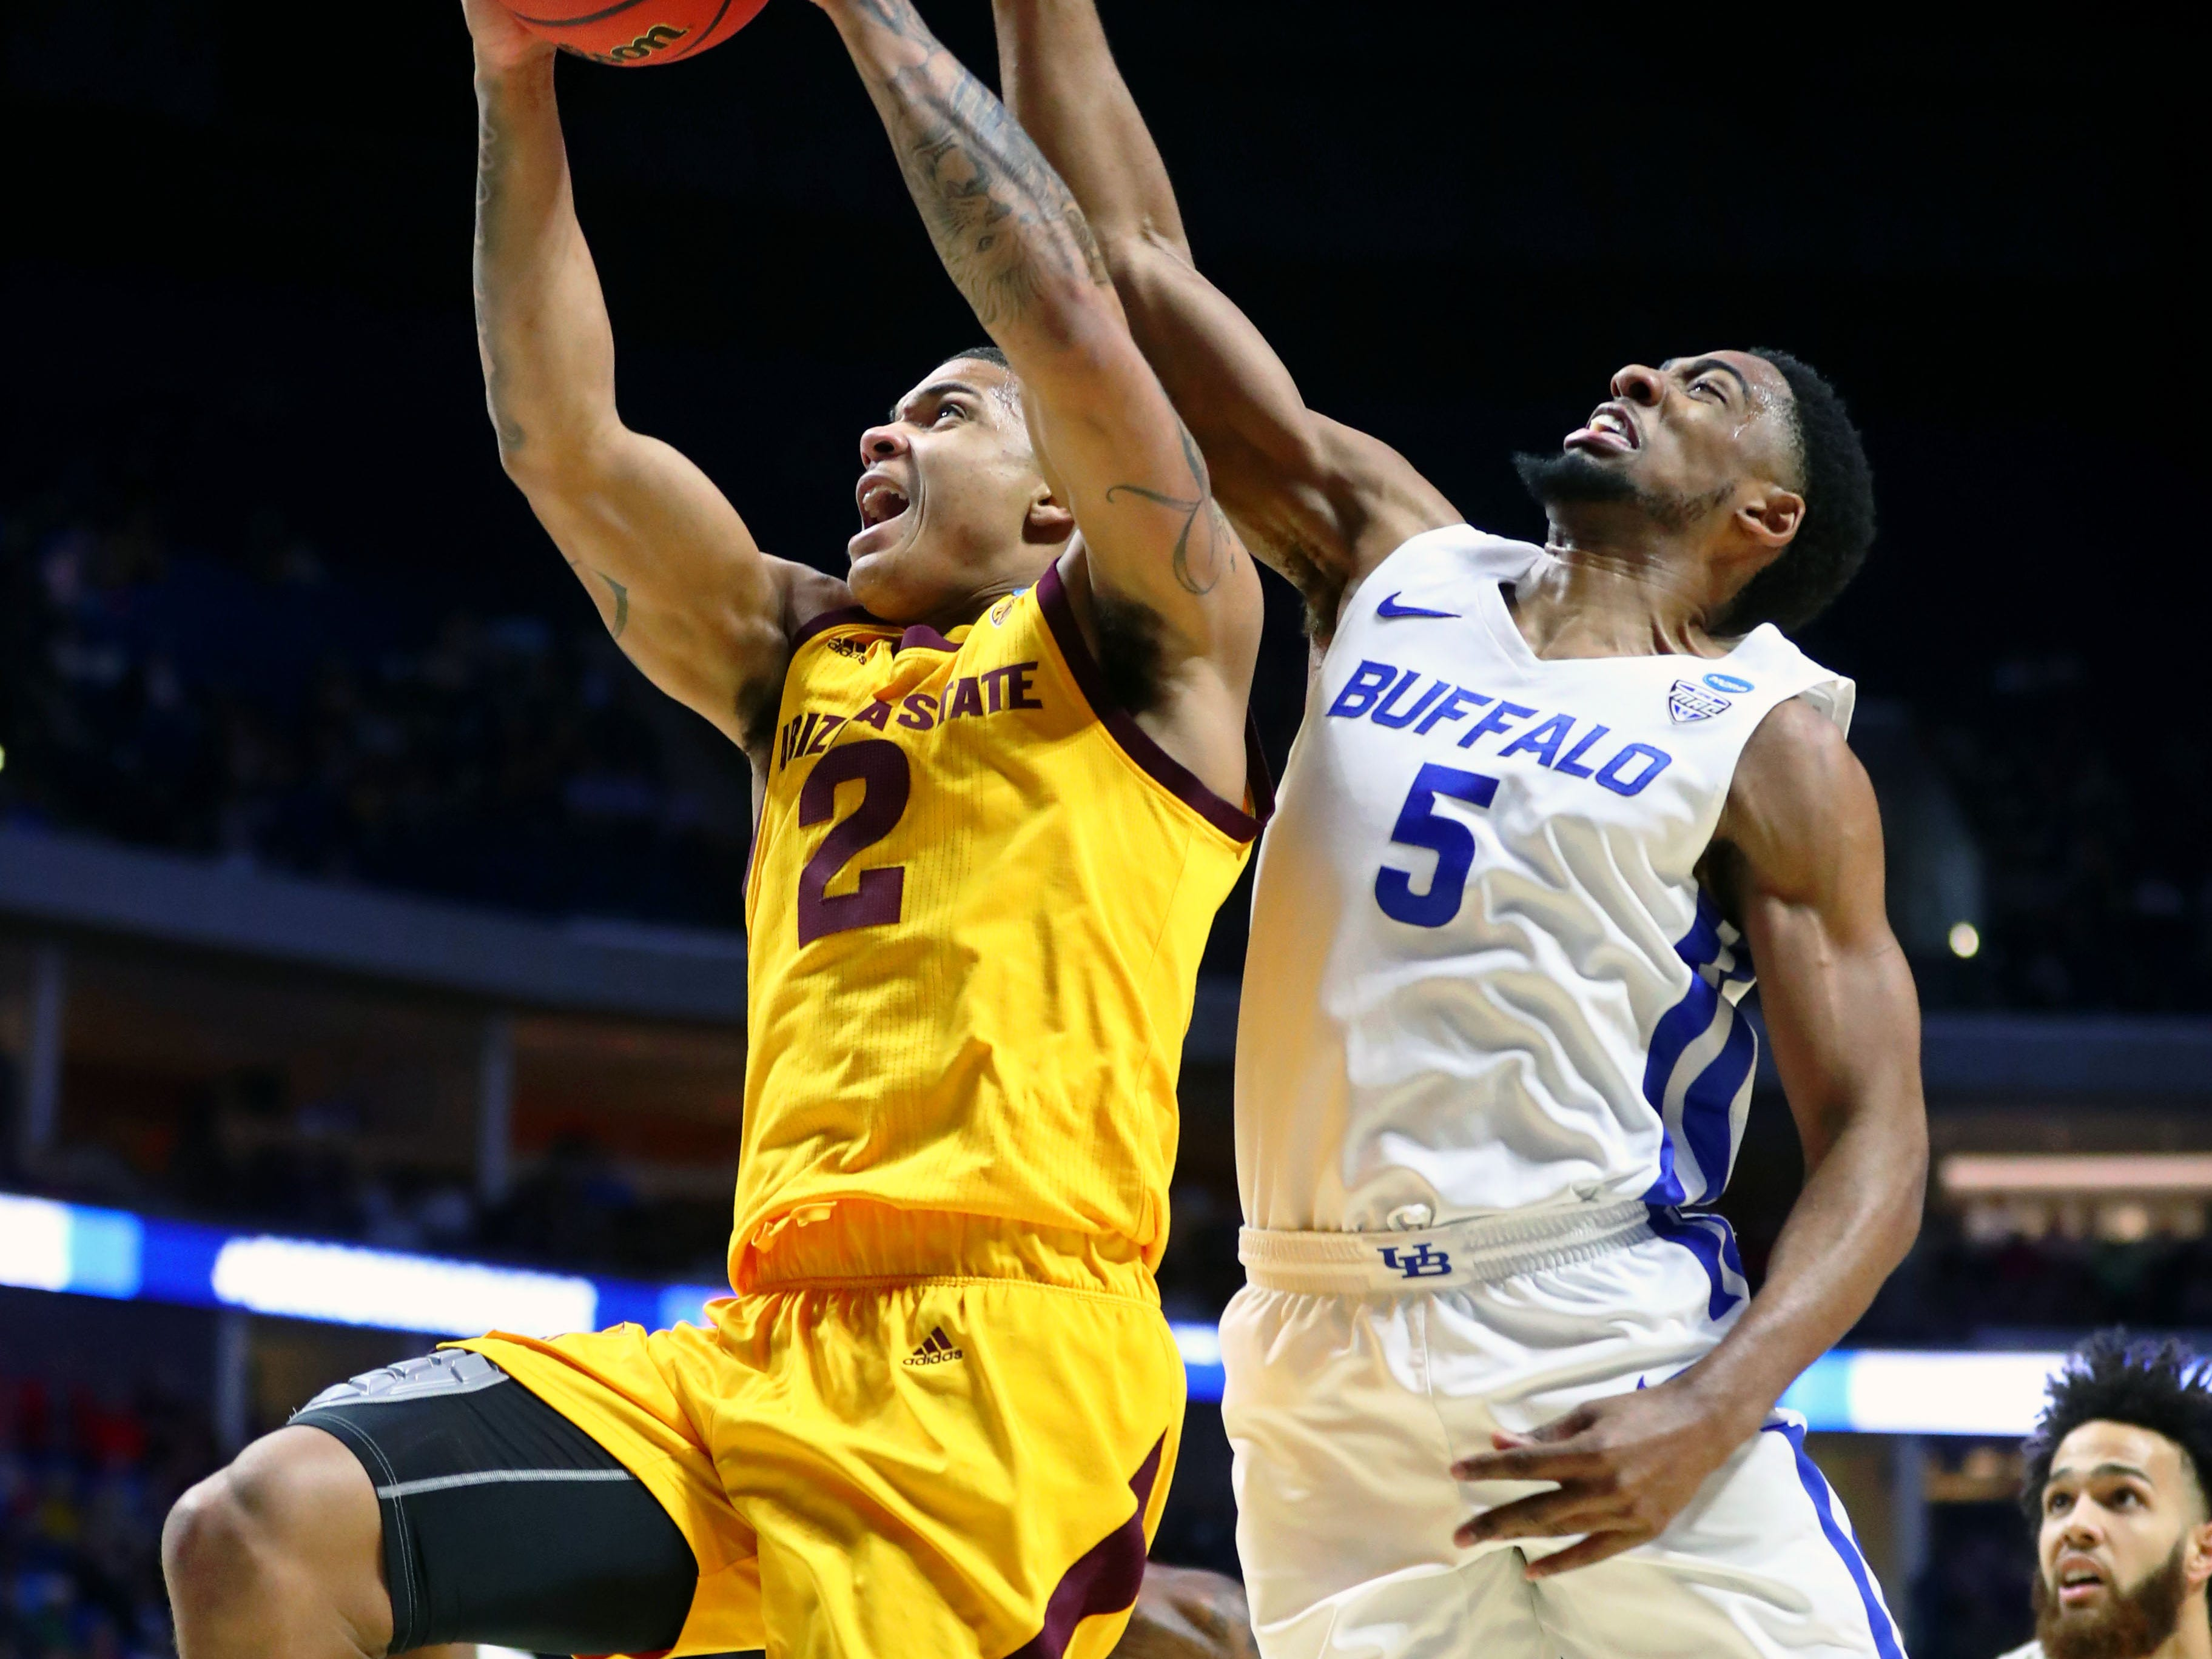 Mar 22, 2019; Tulsa, OK, USA; Arizona State Sun Devils guard Rob Edwards (2) shoots the ball as Buffalo Bulls guard CJ Massinburg (5) defends during the first half in the first round of the 2019 NCAA Tournament at BOK Center. Mandatory Credit: Mark J. Rebilas-USA TODAY Sports